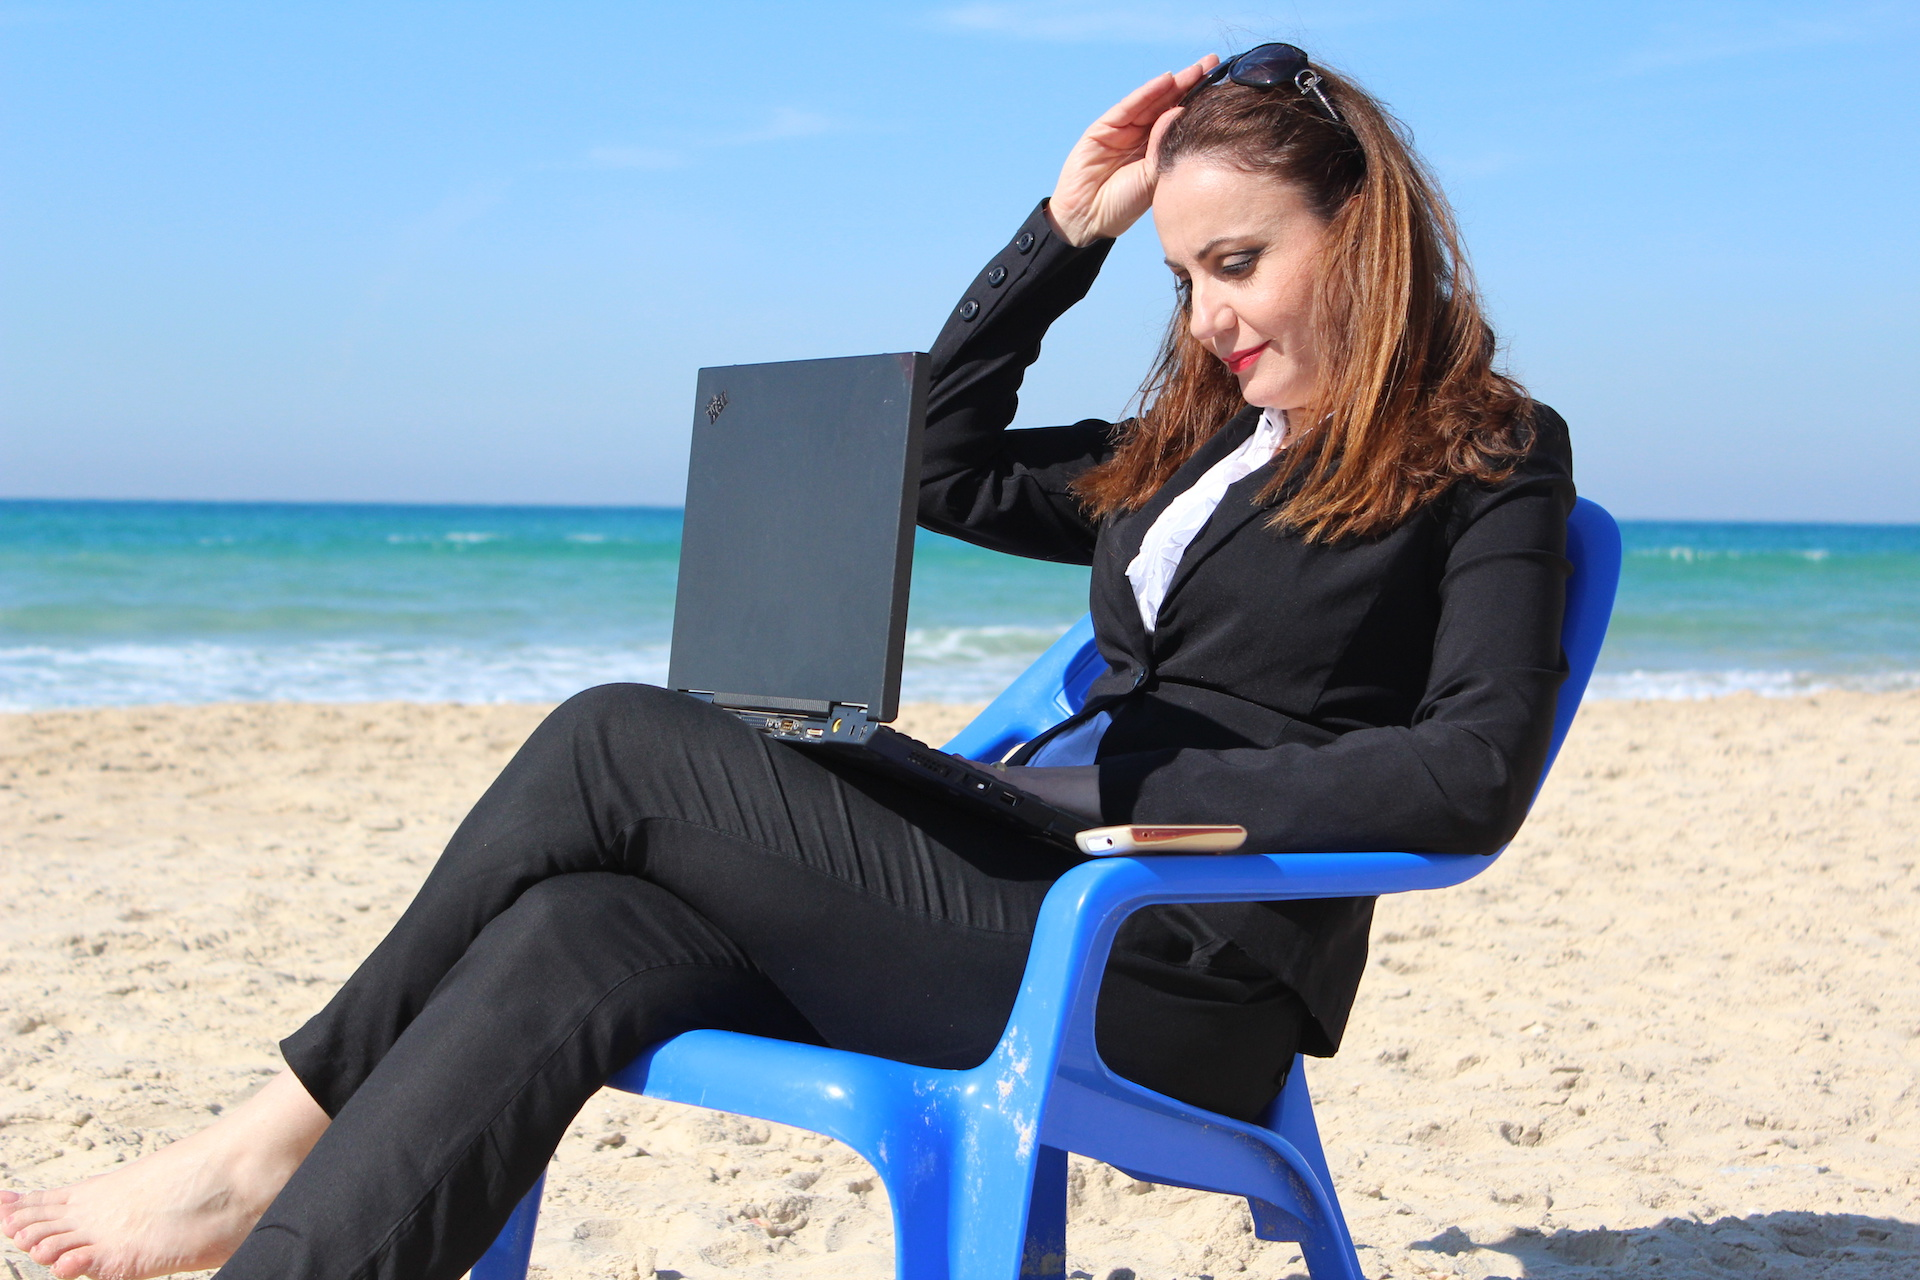 woman-working-beach